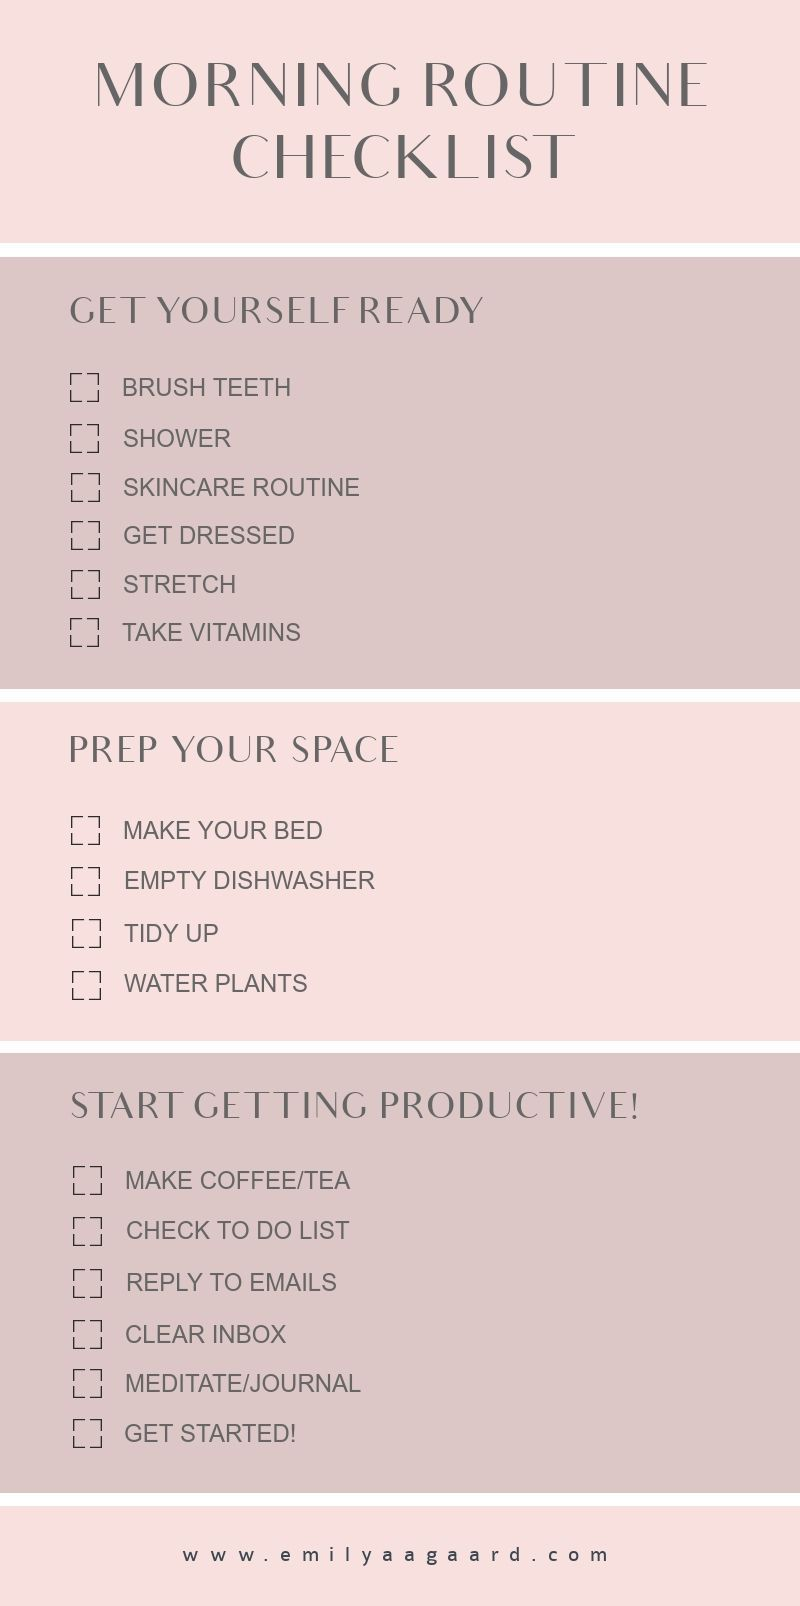 Produktive Morgenroutine - New Ideas #workathome